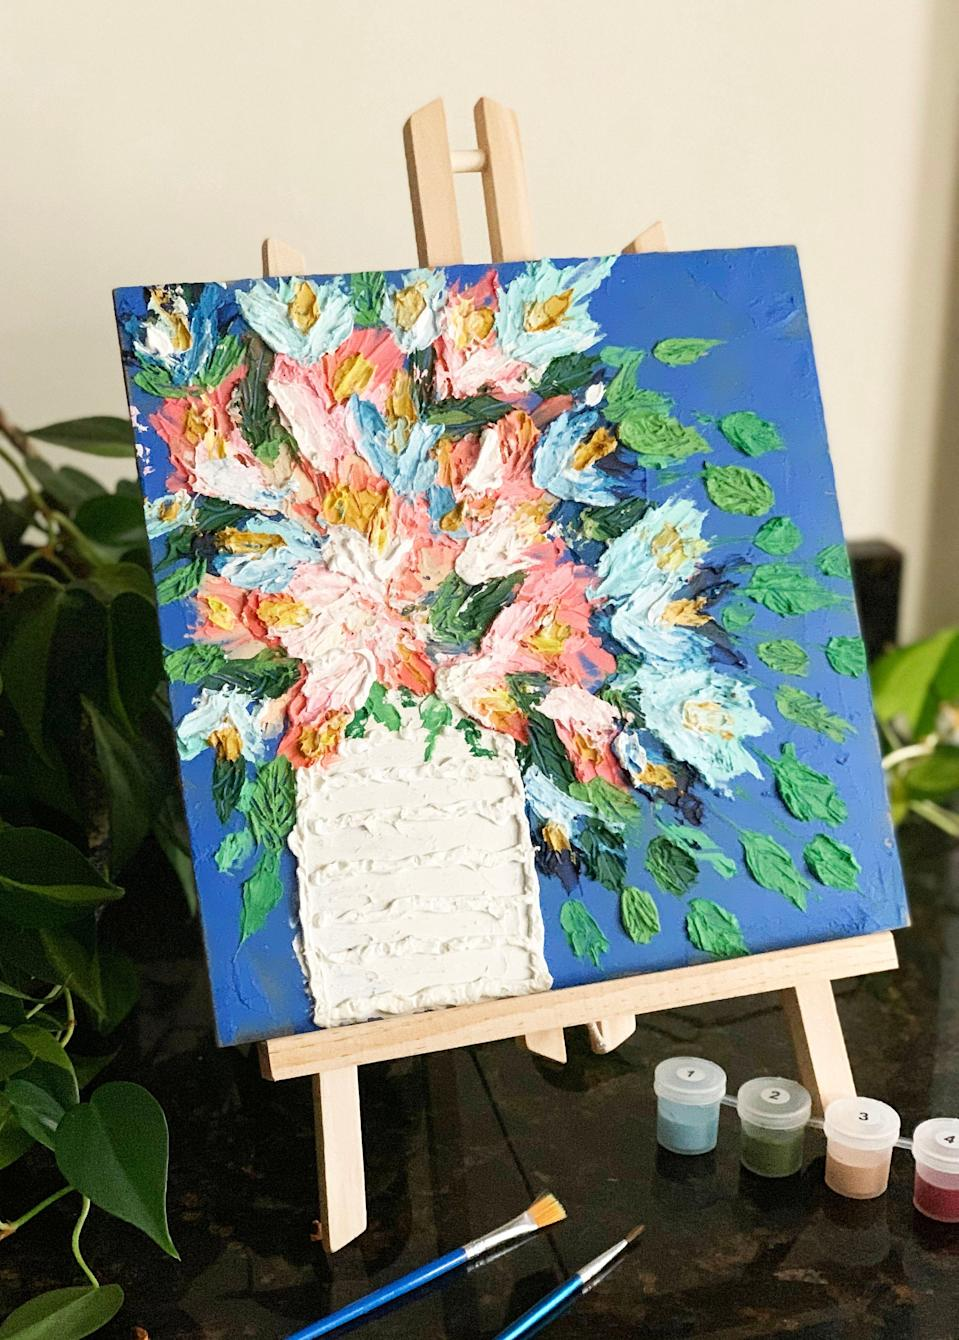 """<br><br><strong>CatePaperCo</strong> Modern floral abstract paint by number kit, $, available at <a href=""""https://www.etsy.com/listing/773923788/modern-floral-abstract-paint-by-number"""" rel=""""nofollow noopener"""" target=""""_blank"""" data-ylk=""""slk:Etsy"""" class=""""link rapid-noclick-resp"""">Etsy</a>"""